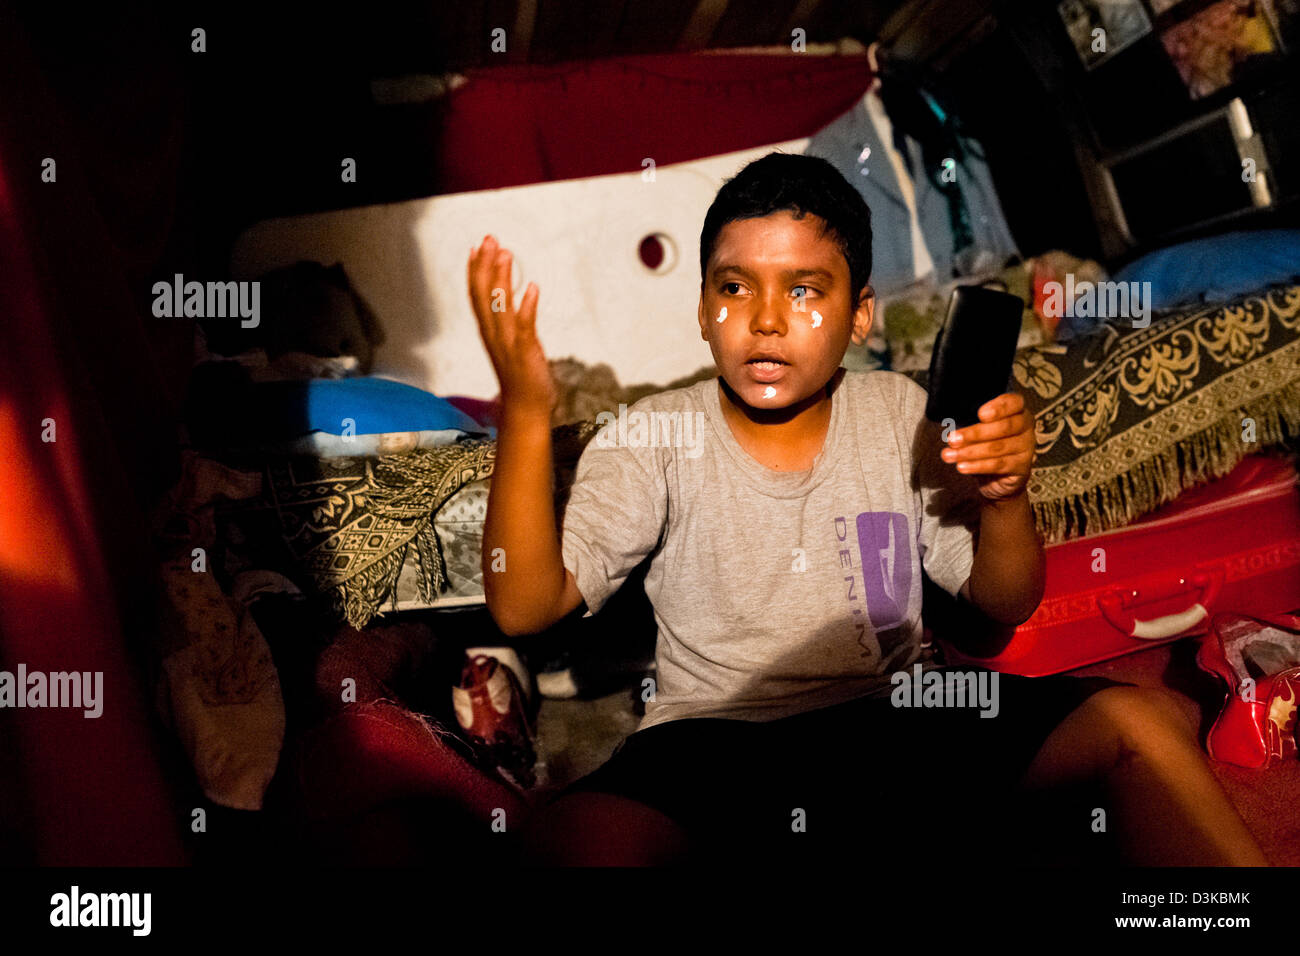 A Salvadorean boy applies makeup before his clown performance at a family run circus travelling in Central America. - Stock Image